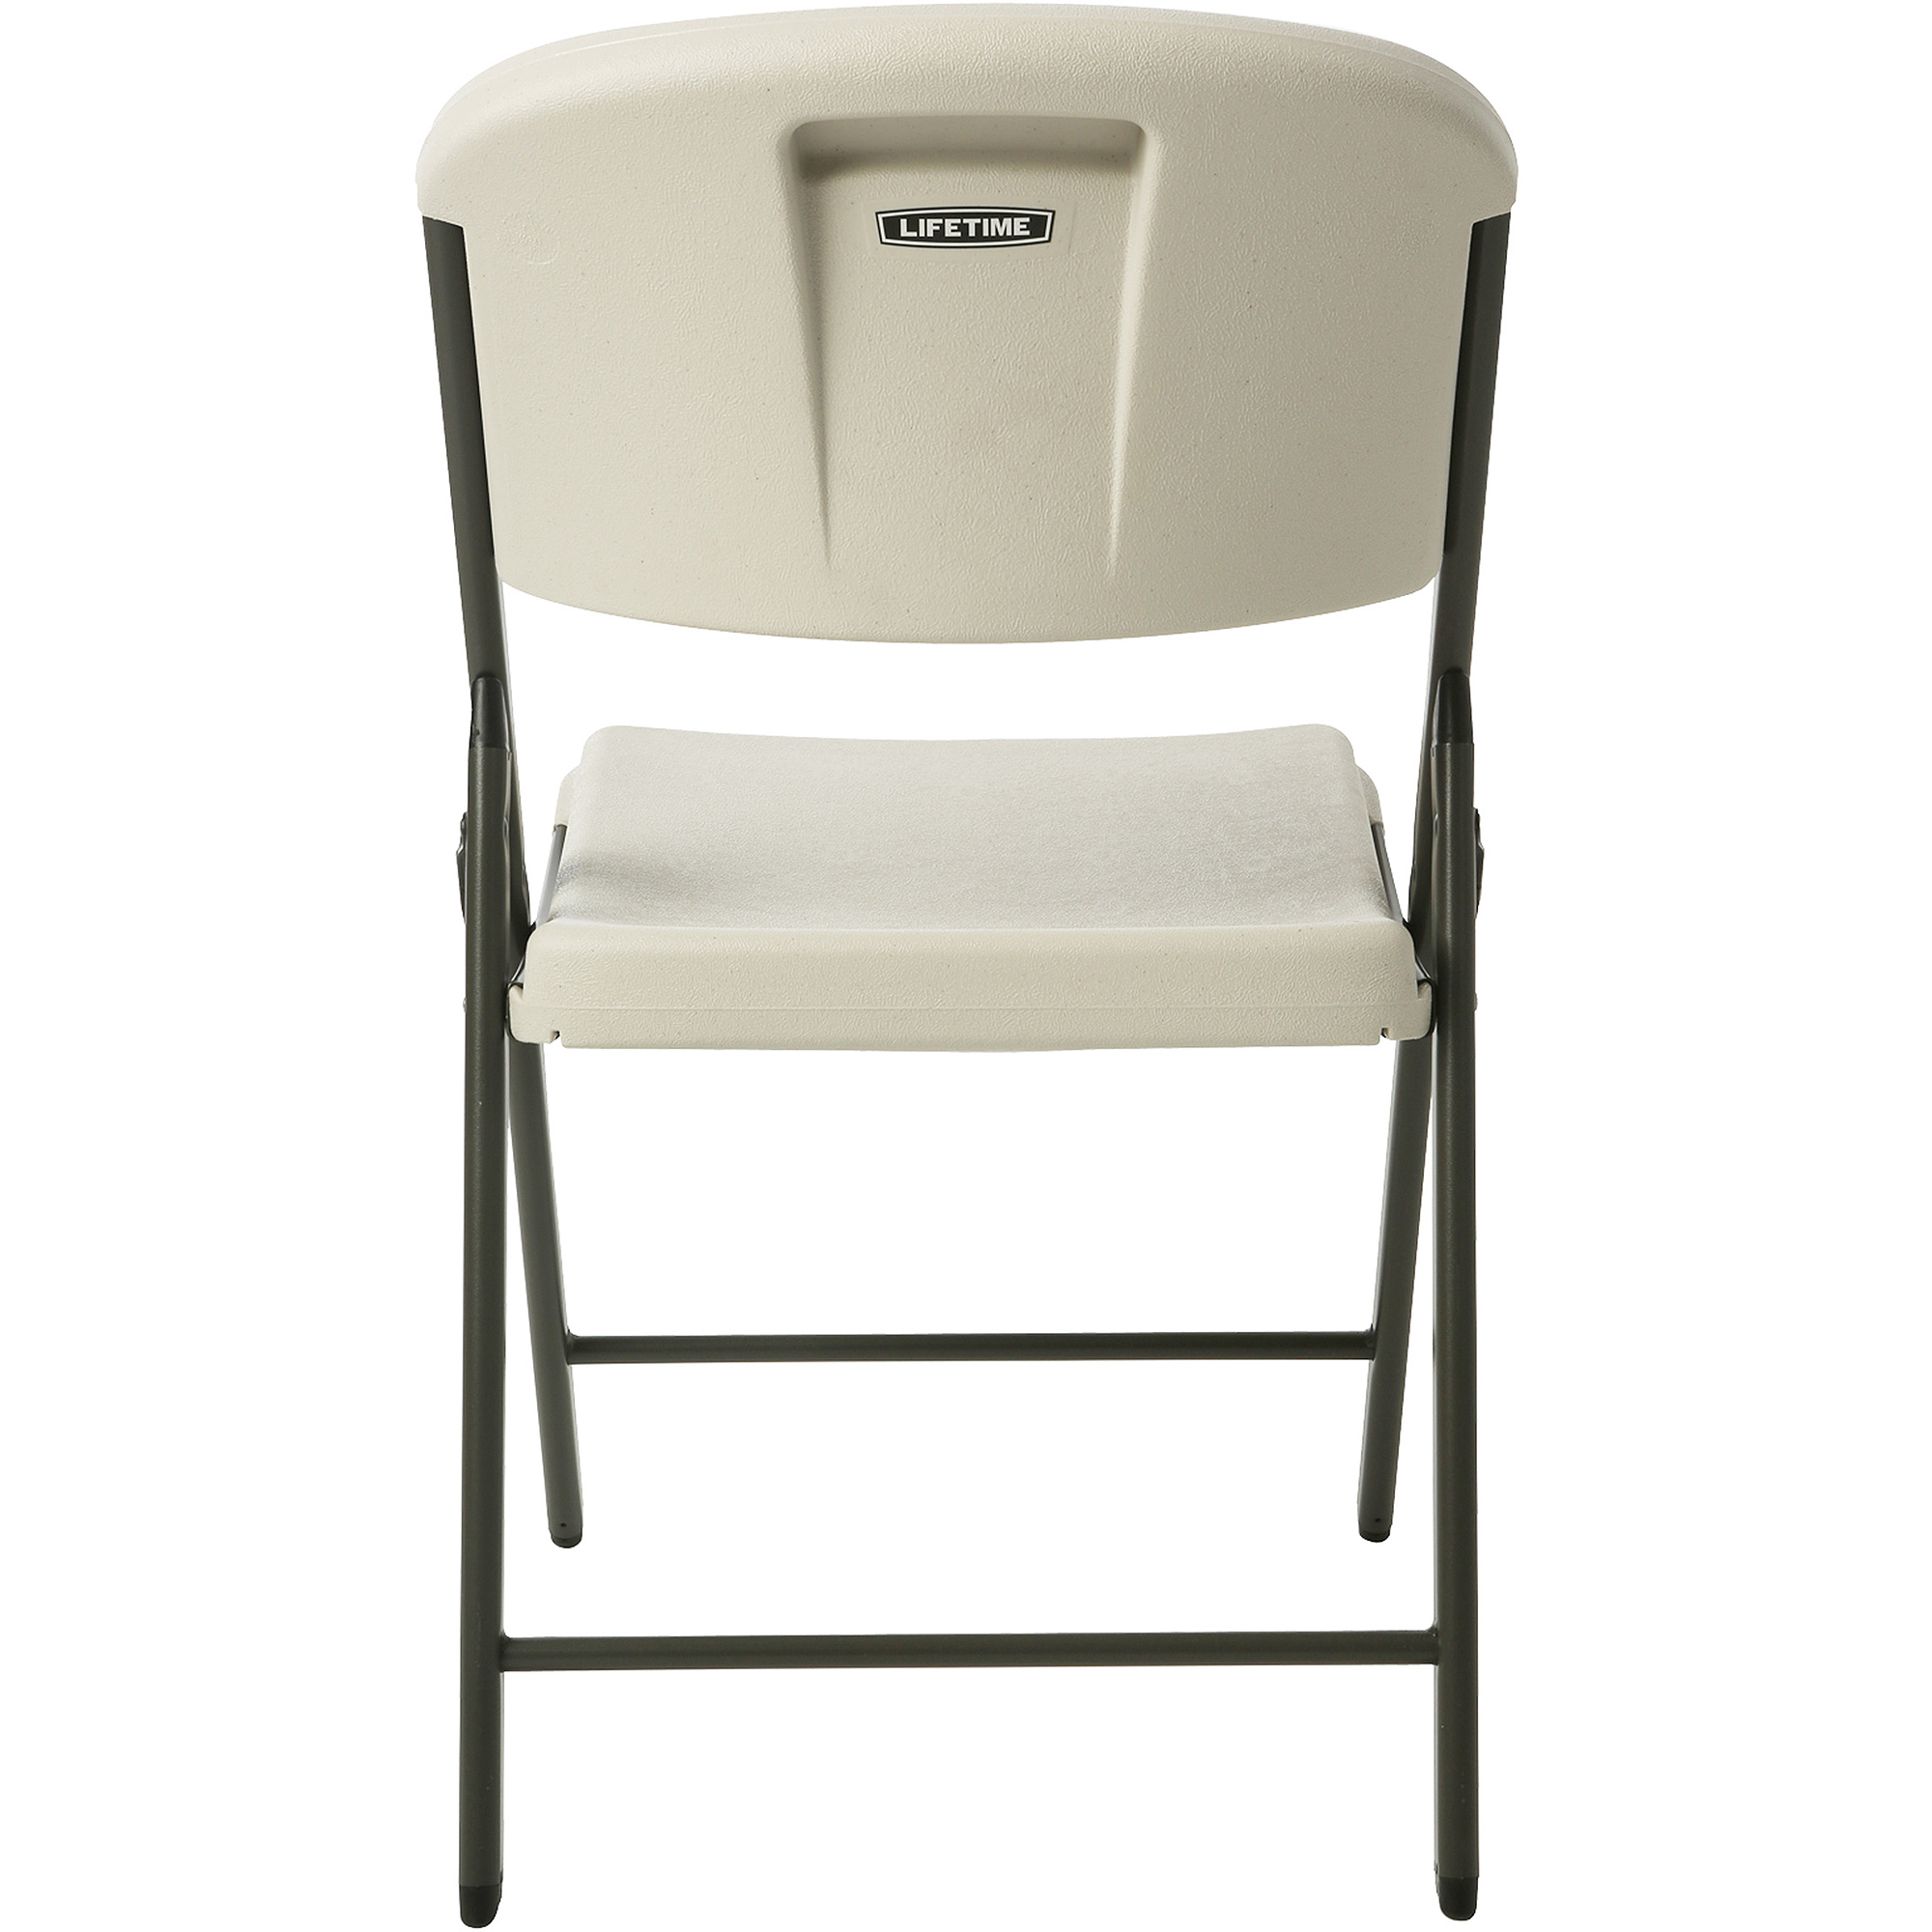 Lifetime Classic mercial Folding Chair Set of 4 Walmart